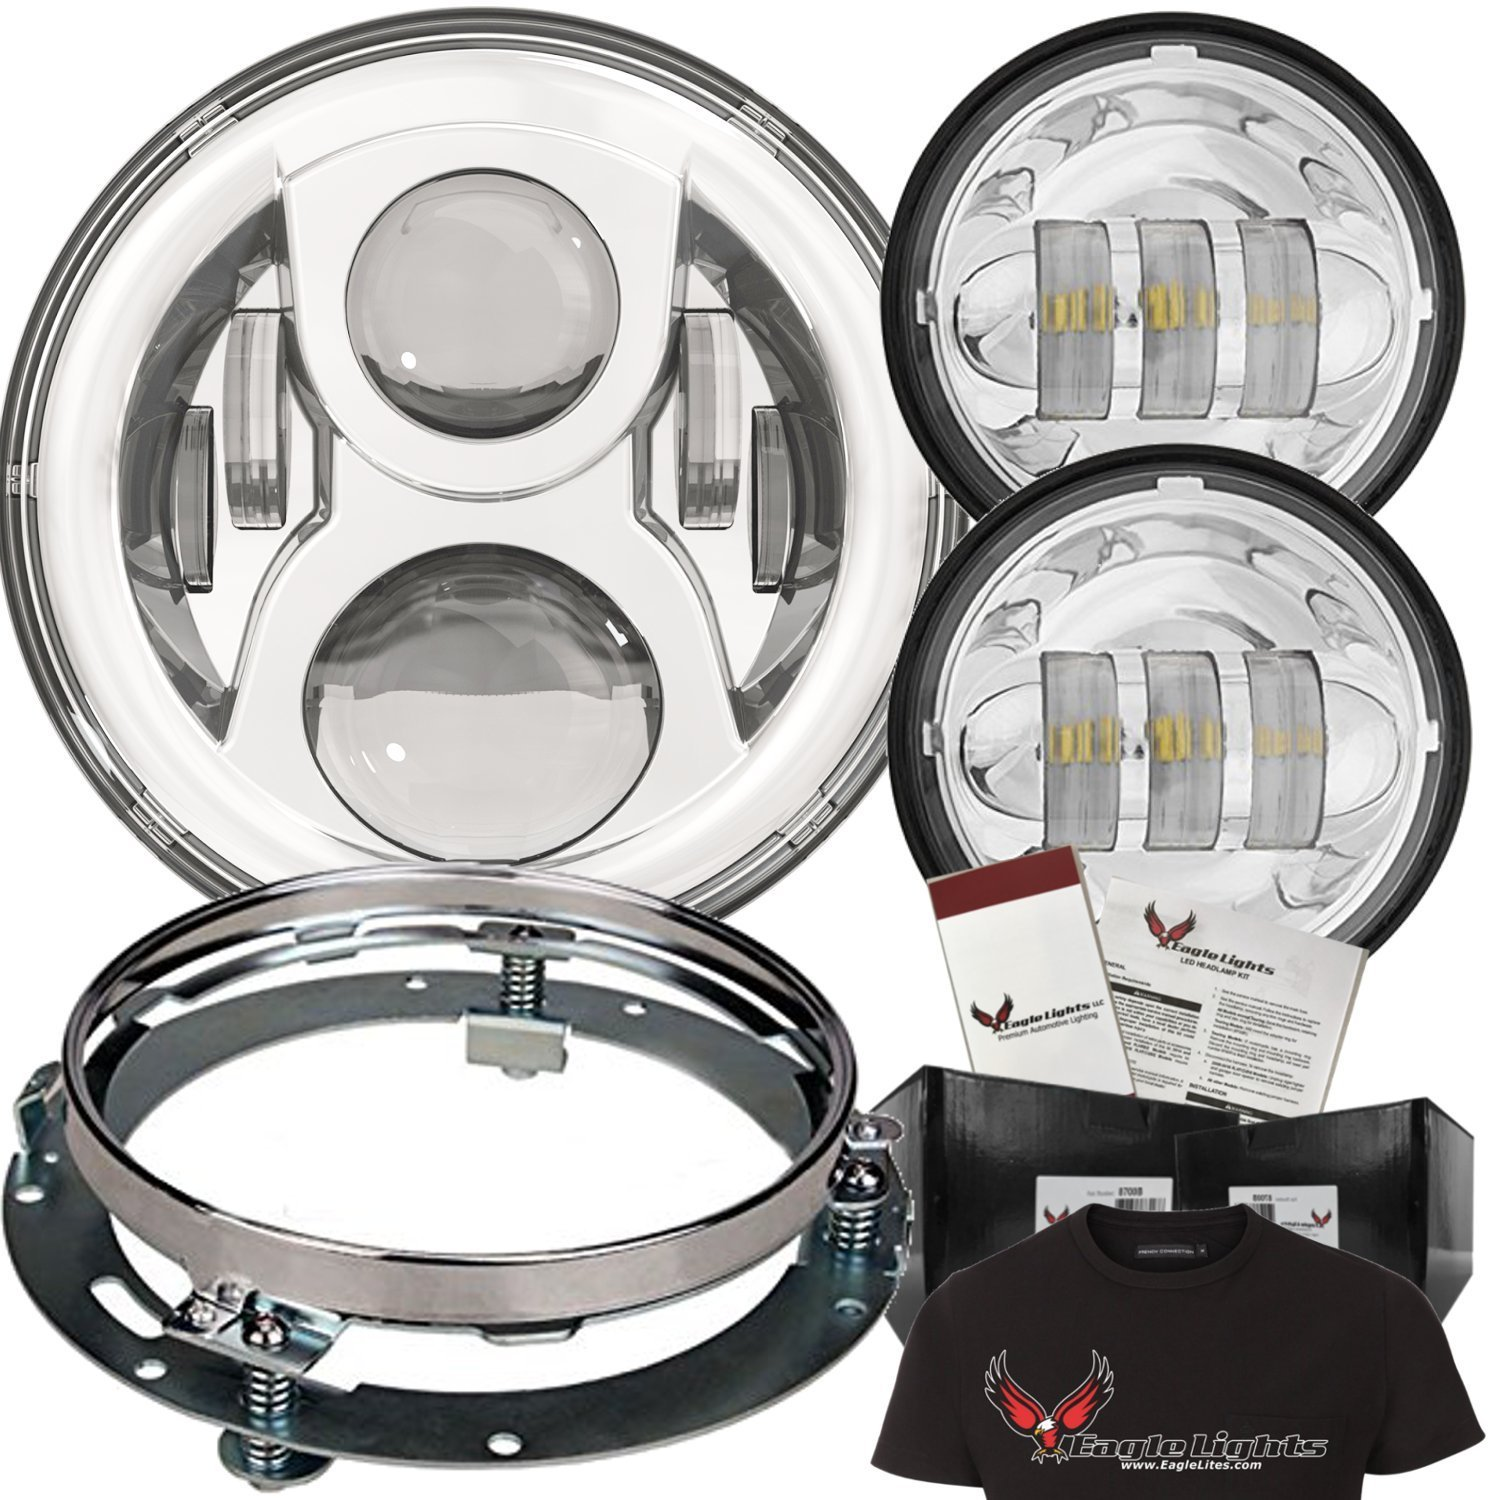 """Eagle Lights 7"""" Round LED Headlight Kit 8700G2 Gen 2 Daymaker with Matching Passing Lamps & Adapter Ring (Chrome)"""